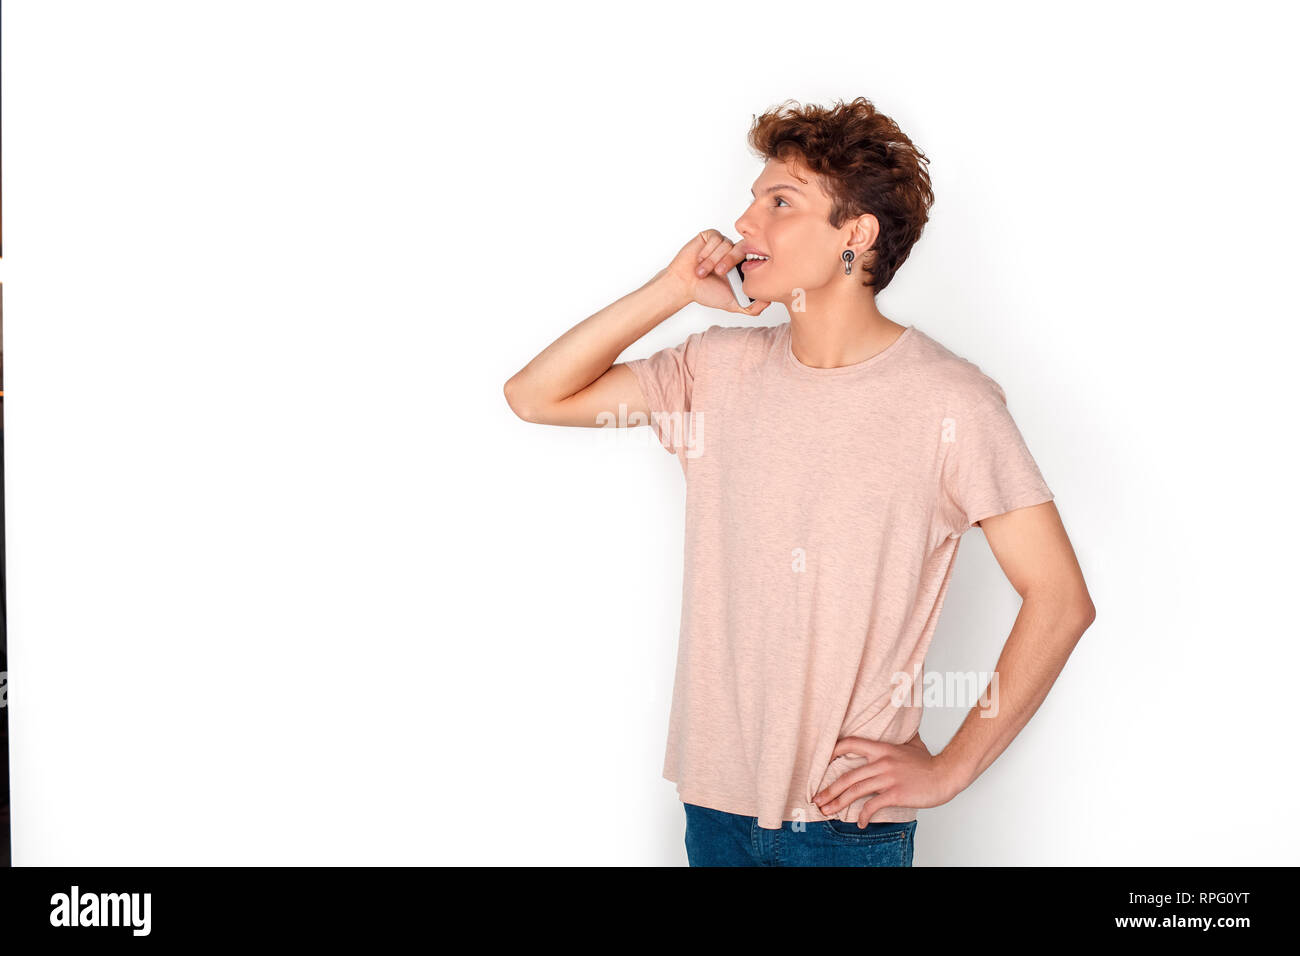 65ce3ccb3d71c Teenager with earrings studio standing isolated on white answering ...